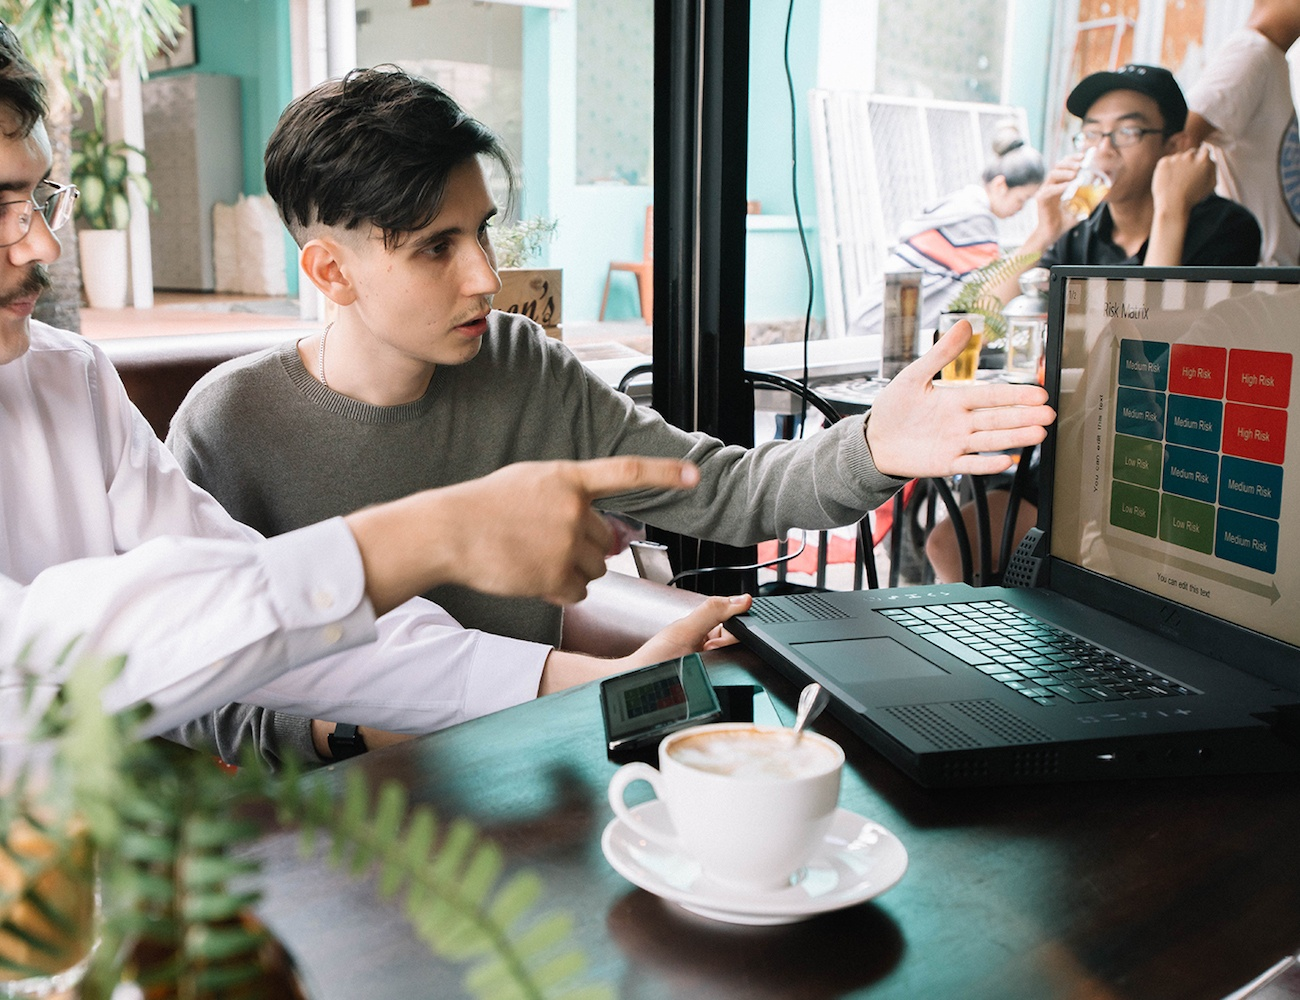 XFINITUM – Hybrid Laptop Powered by Your Smartphone